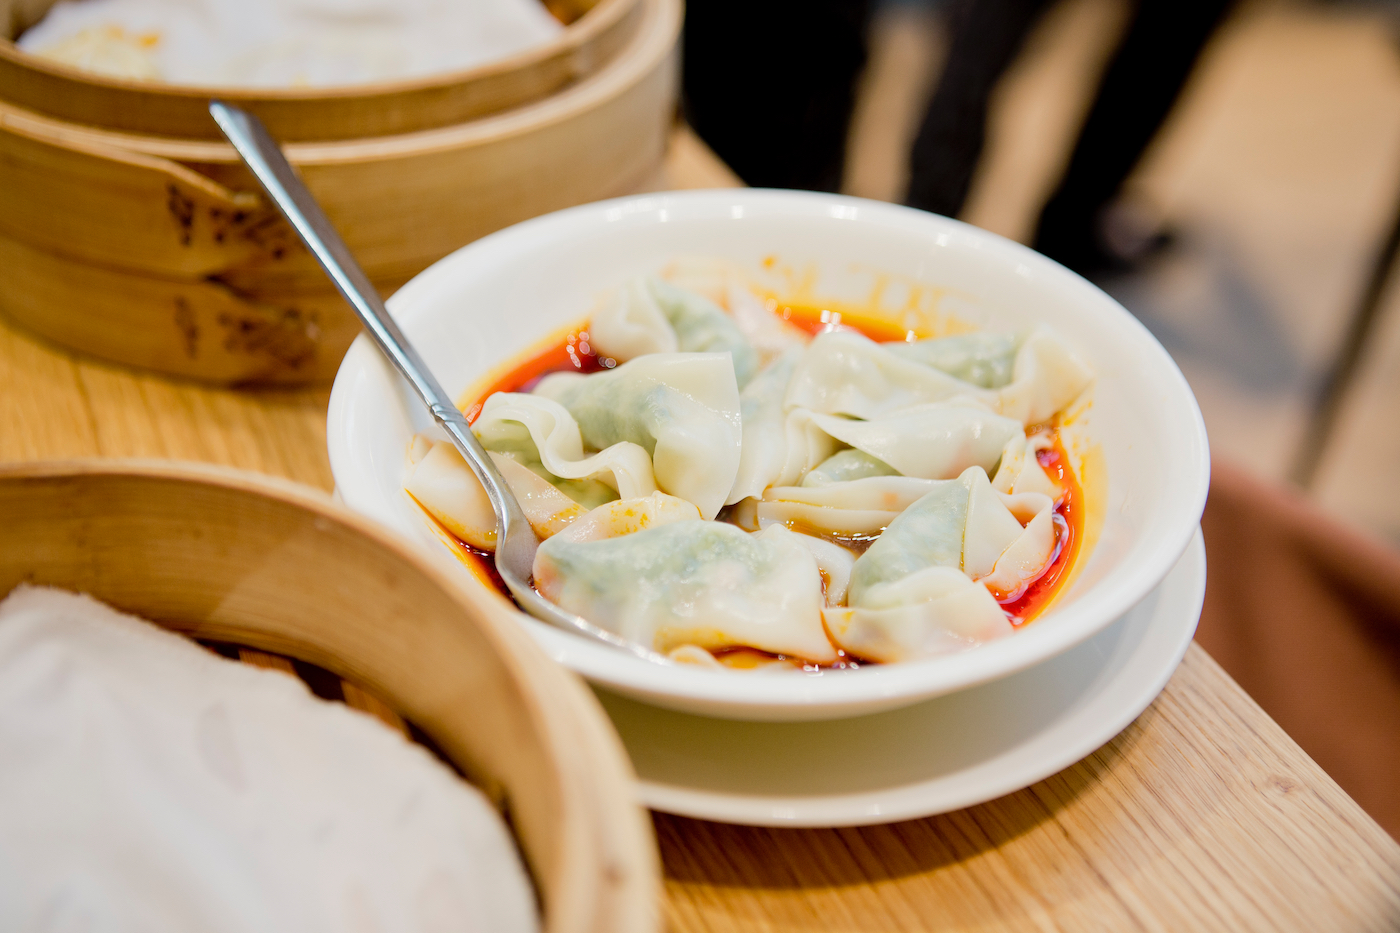 din tai fung dubai _ emirates mall _ eating dubai _ cheap restaurants dubai